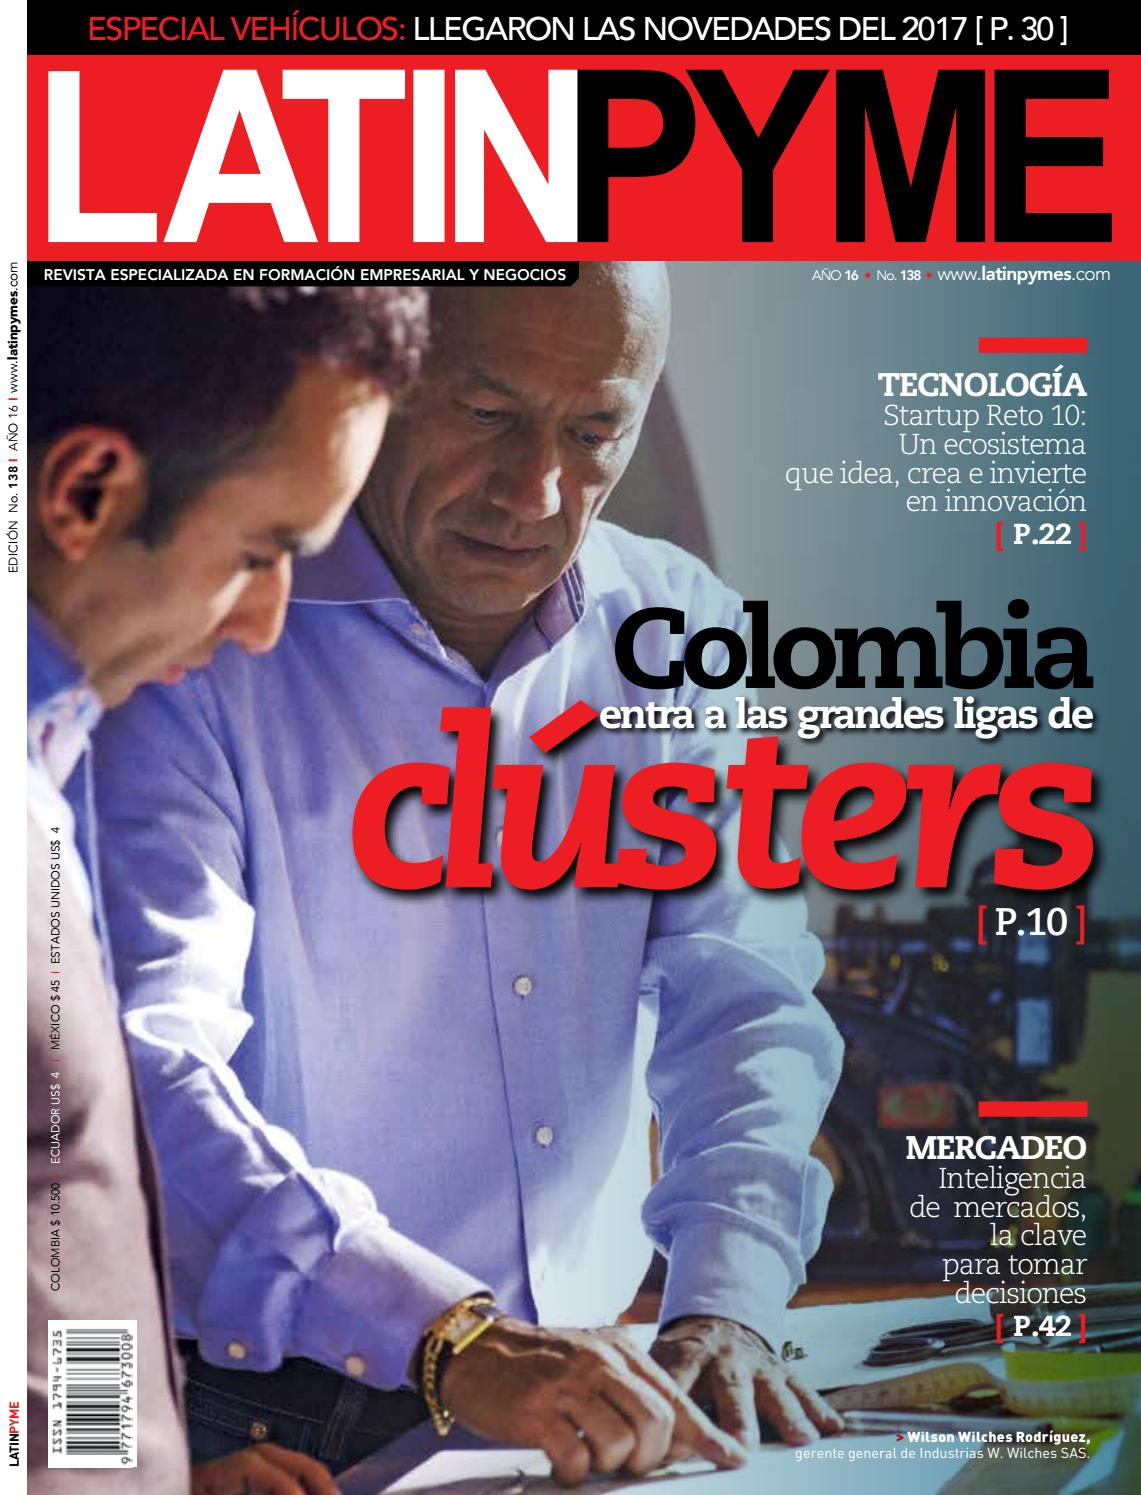 Revista latinpyme 138 by LATINPYME - issuu